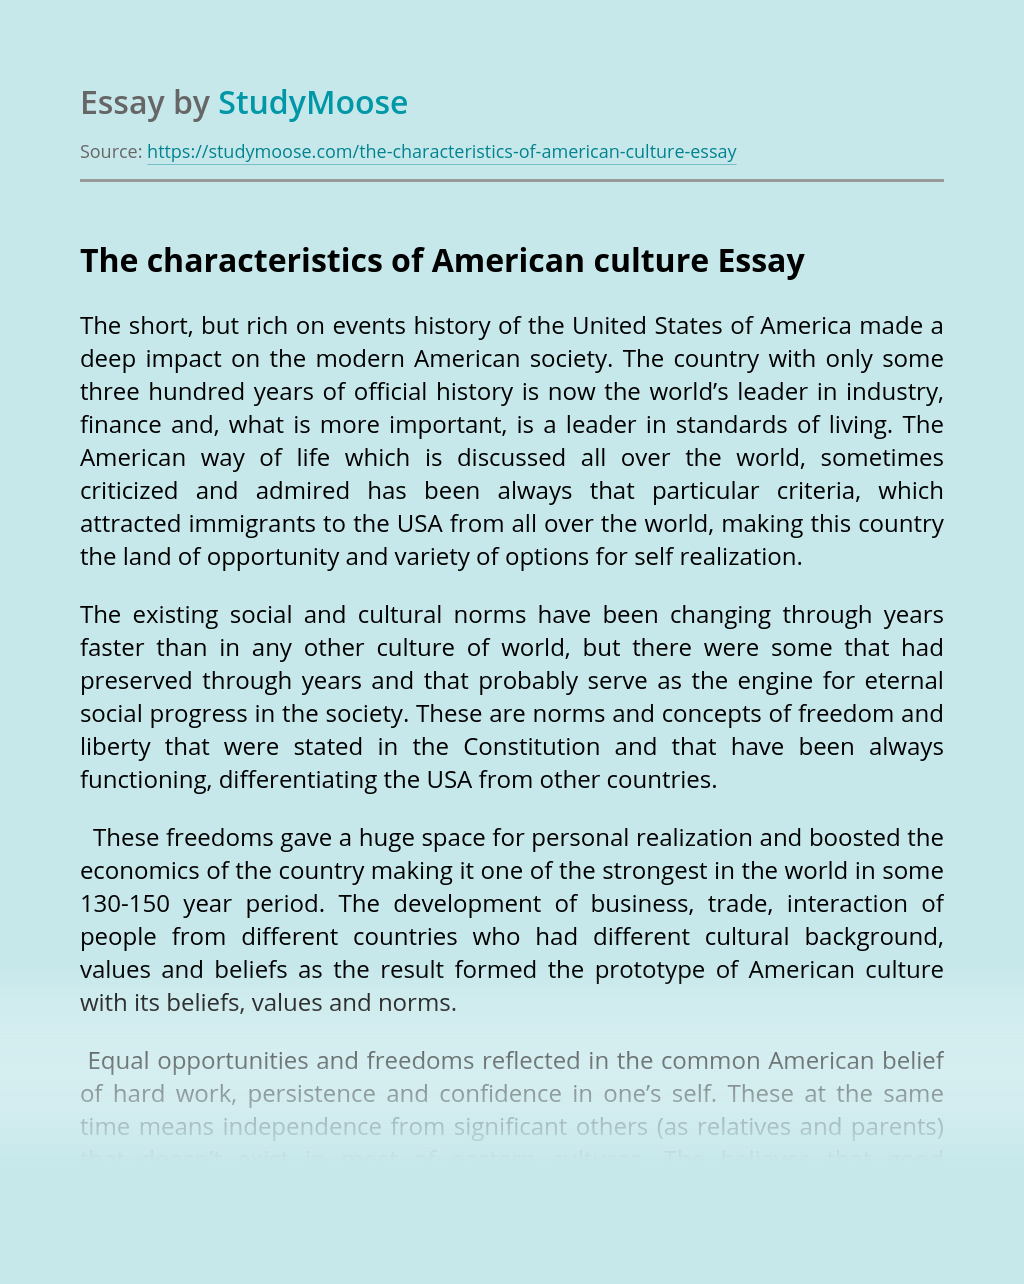 The characteristics of American culture